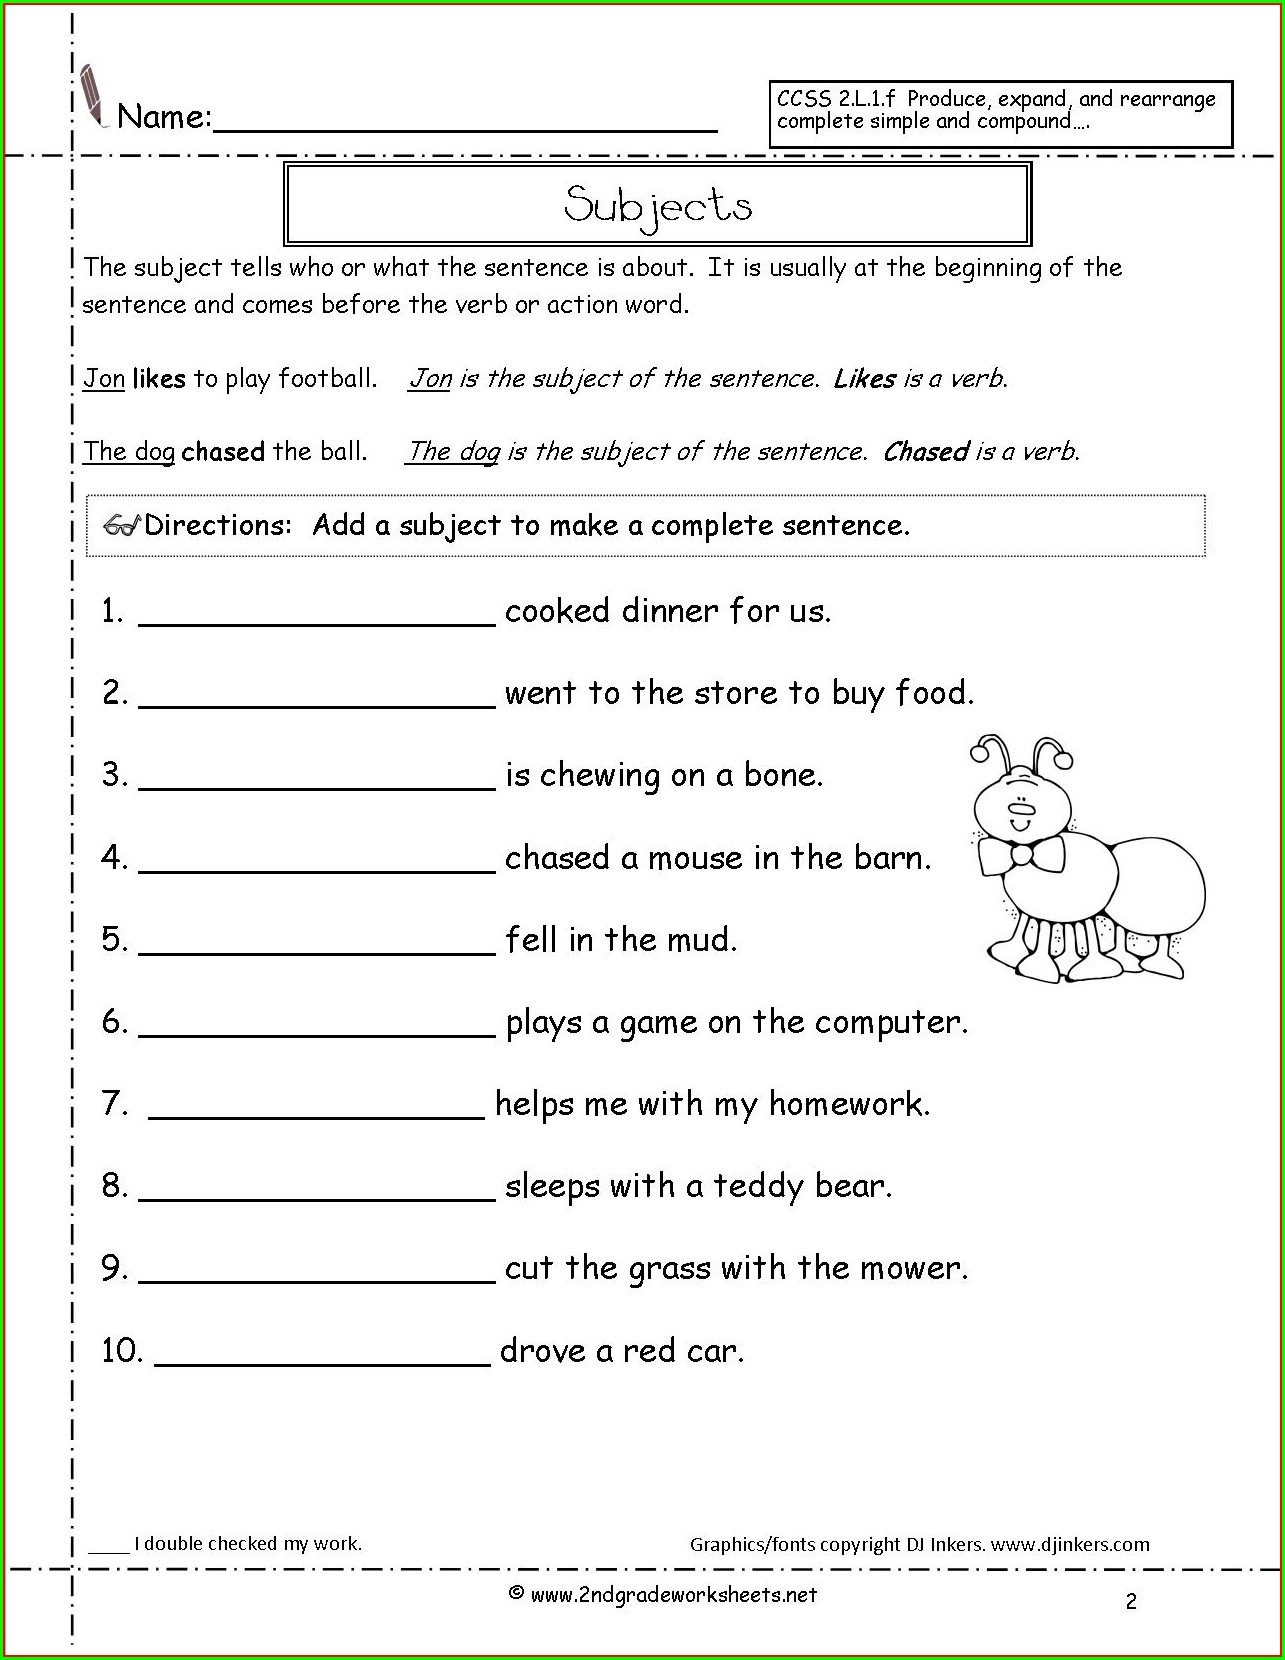 hight resolution of College Sentence Worksheet   Printable Worksheets and Activities for  Teachers